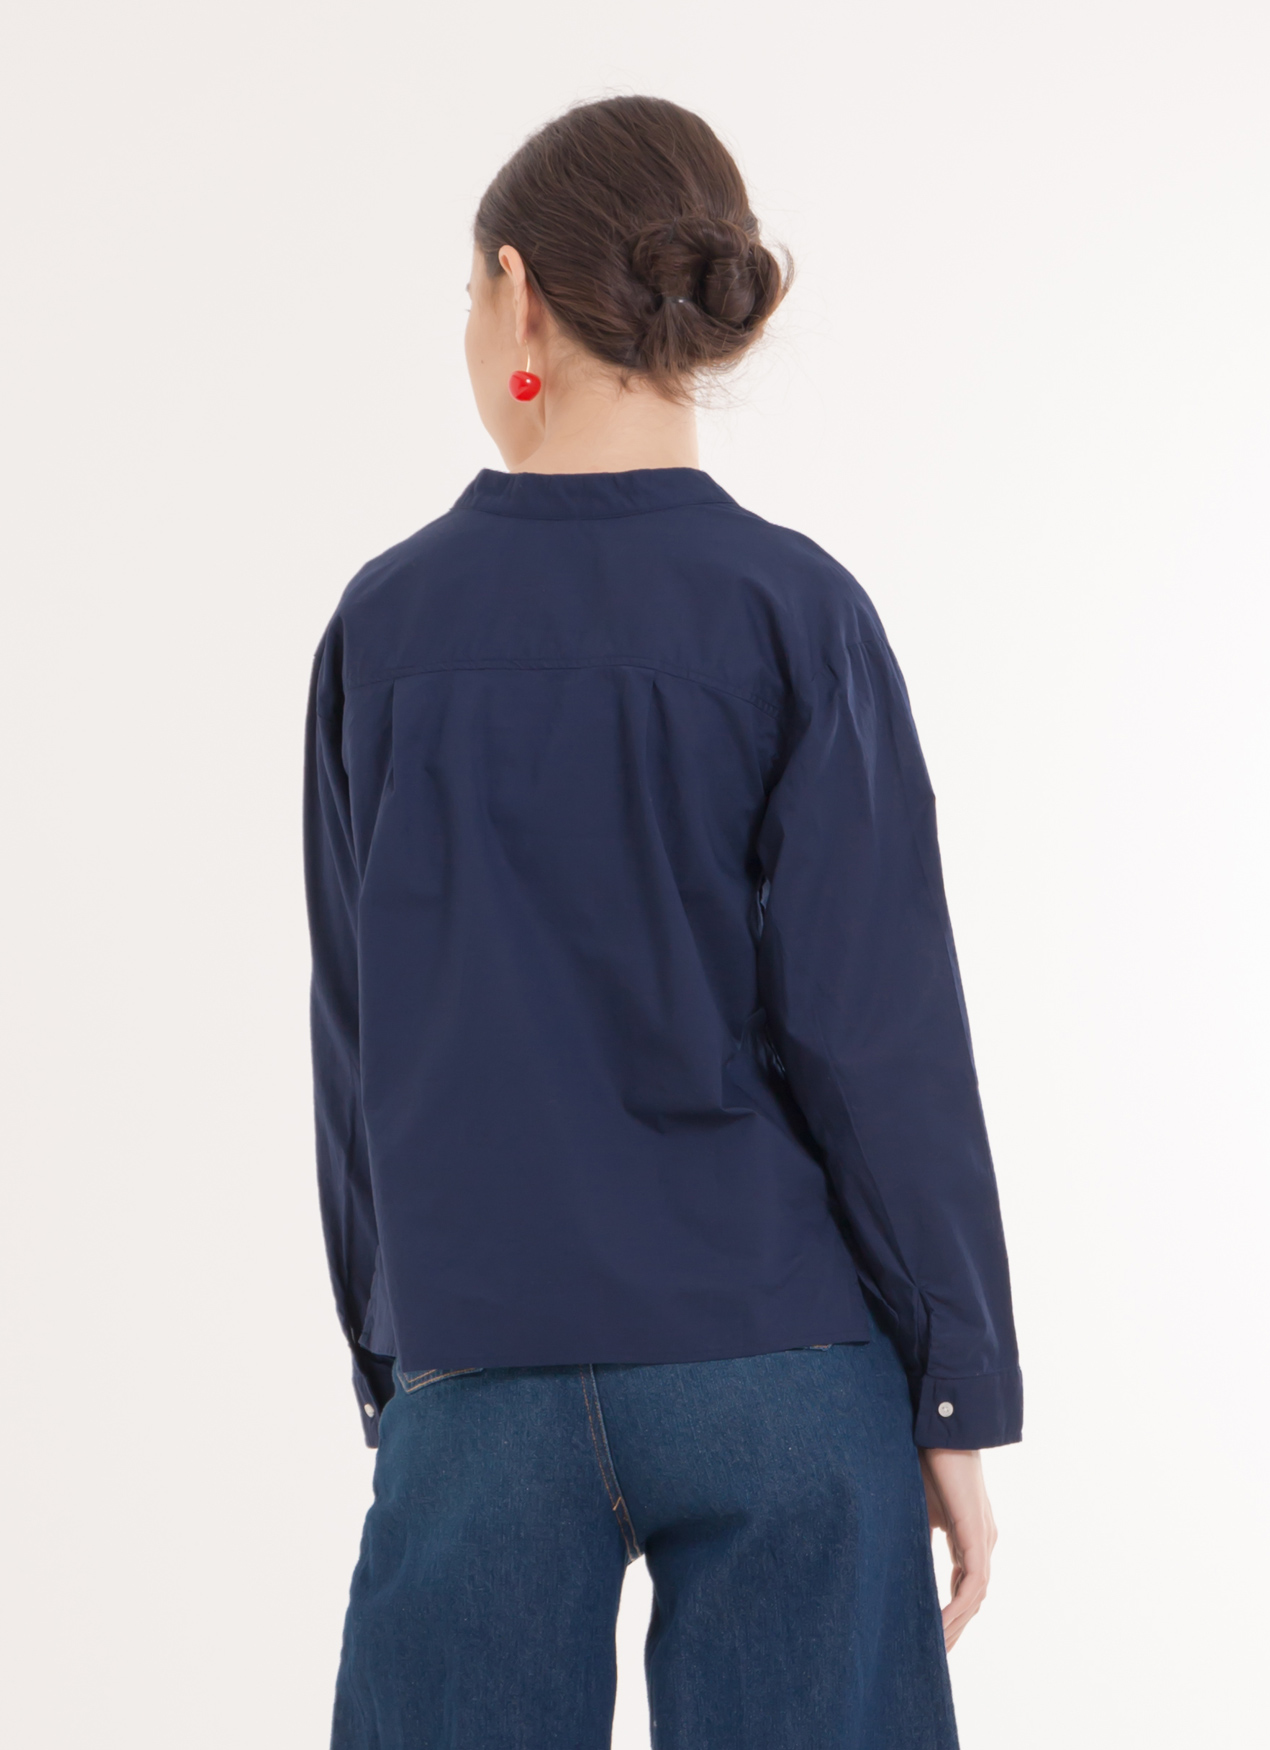 Sevendays Sunday Riri Shirt - Navy